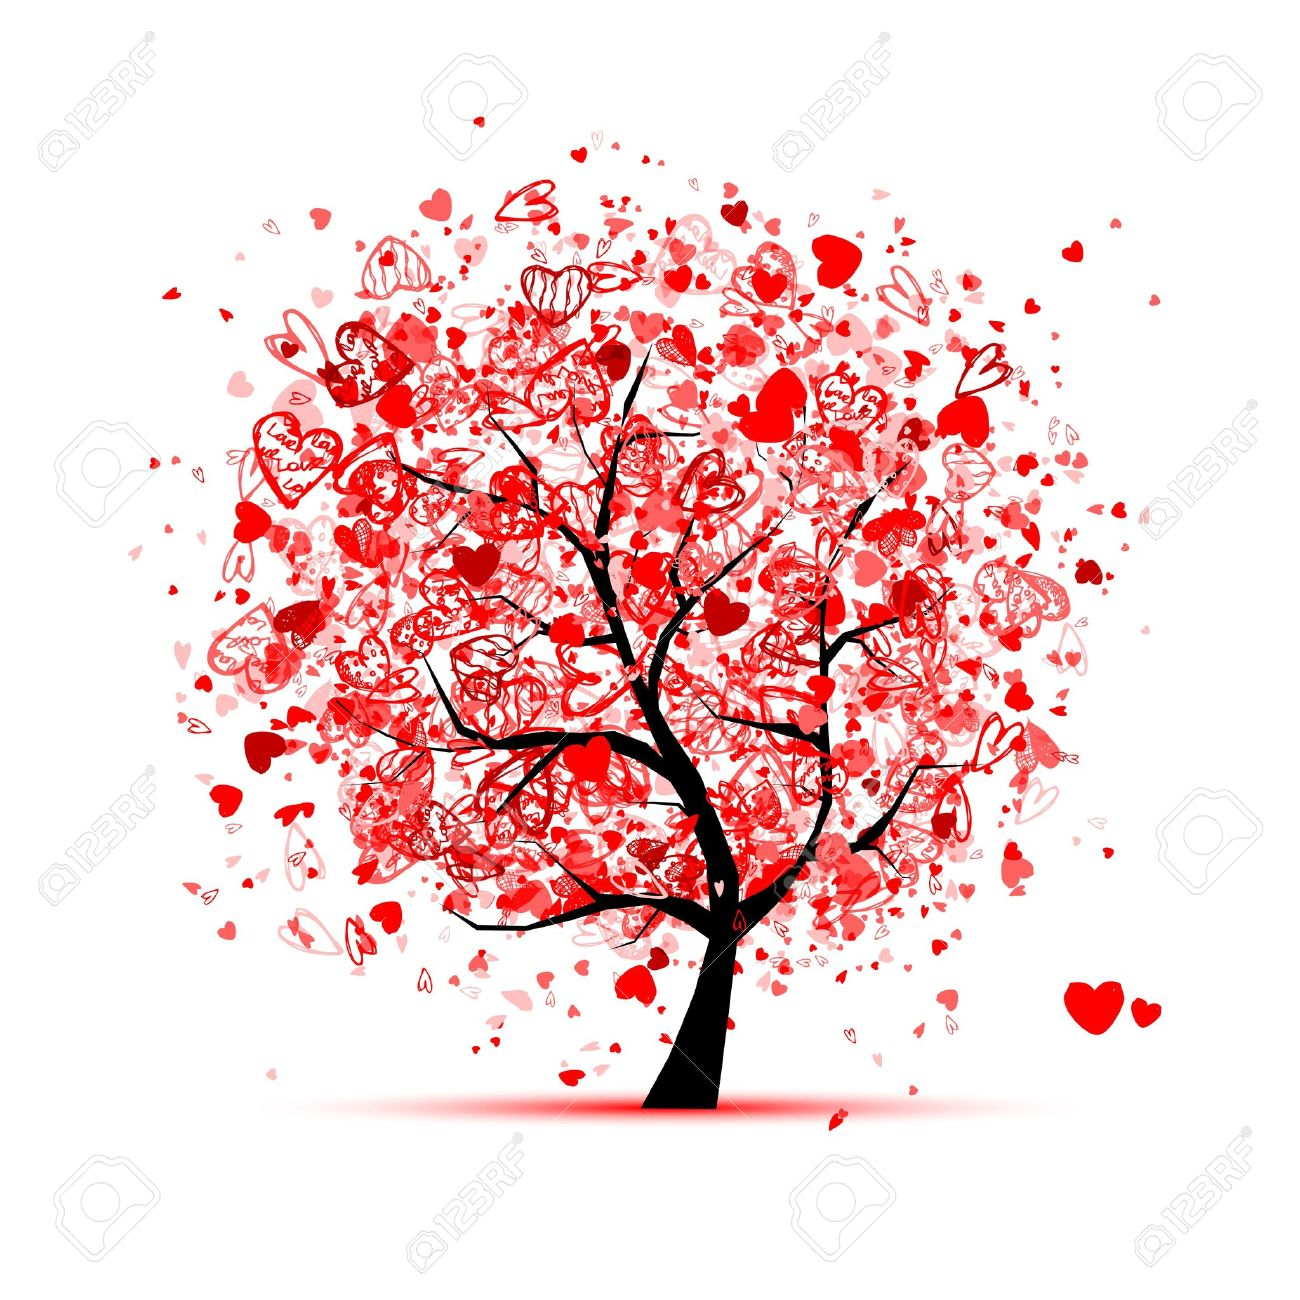 Valentine Tree With Hearts For Your Design Royalty Free Cliparts Vectors And Stock Illustration Image 12016567